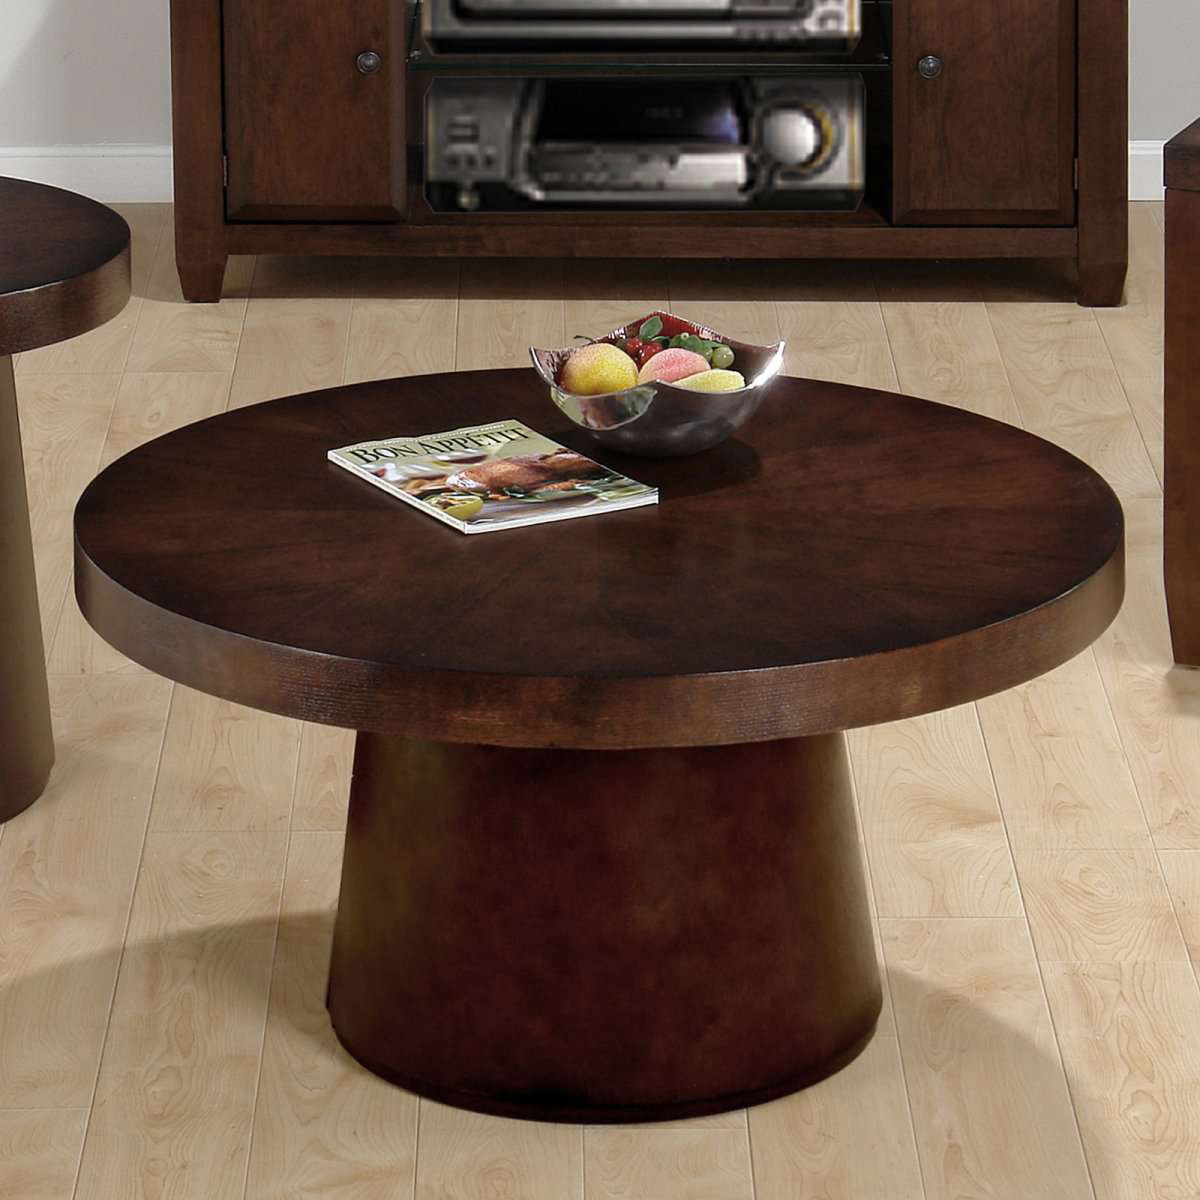 Futuristic Kitchen Design Contemporary Ideas Brown Round Coffee Table Amazing Unique Round Coffee Tables For Small Living Room With Monopole Design On Wooden Laminate Flooring (View 5 of 10)